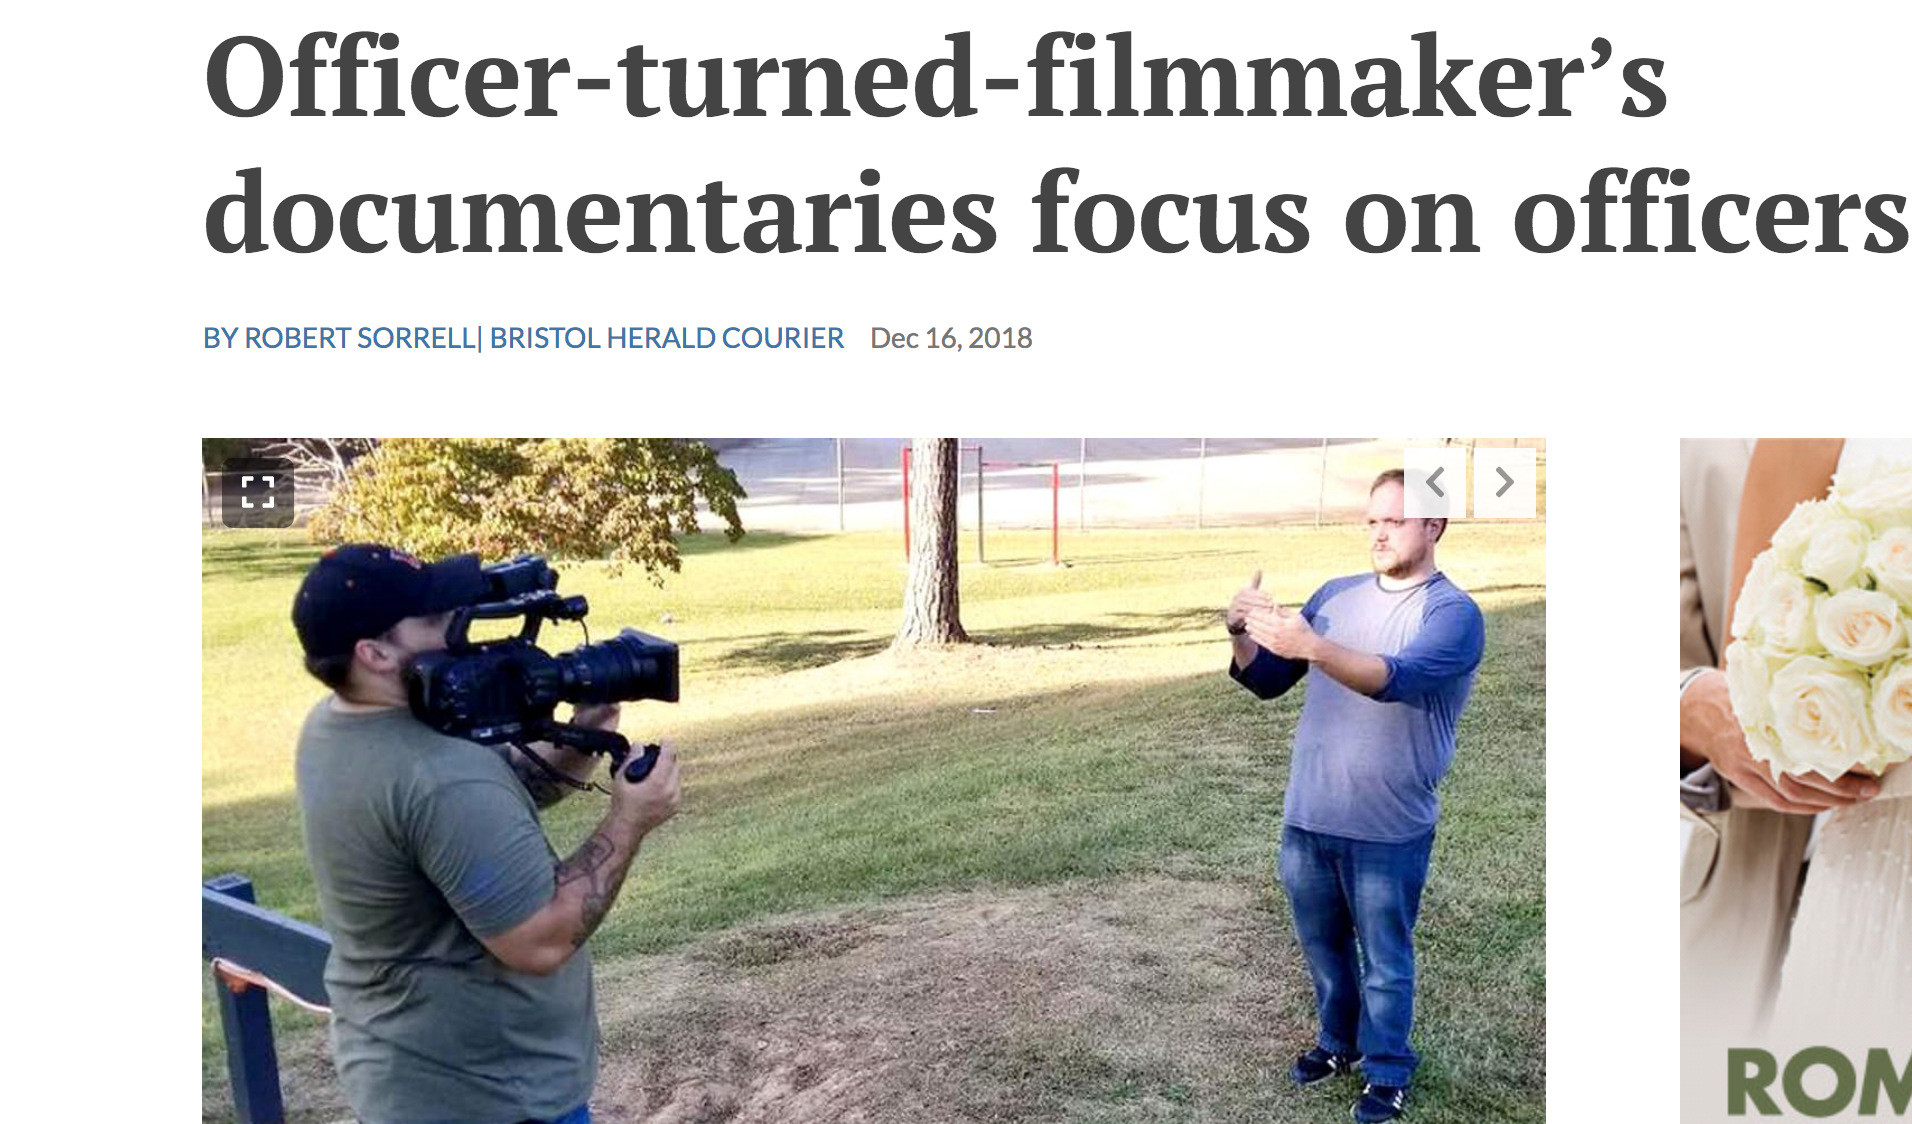 Officer-turned-filmmaker's documentaries focus on officers - Bristol Herald Courier